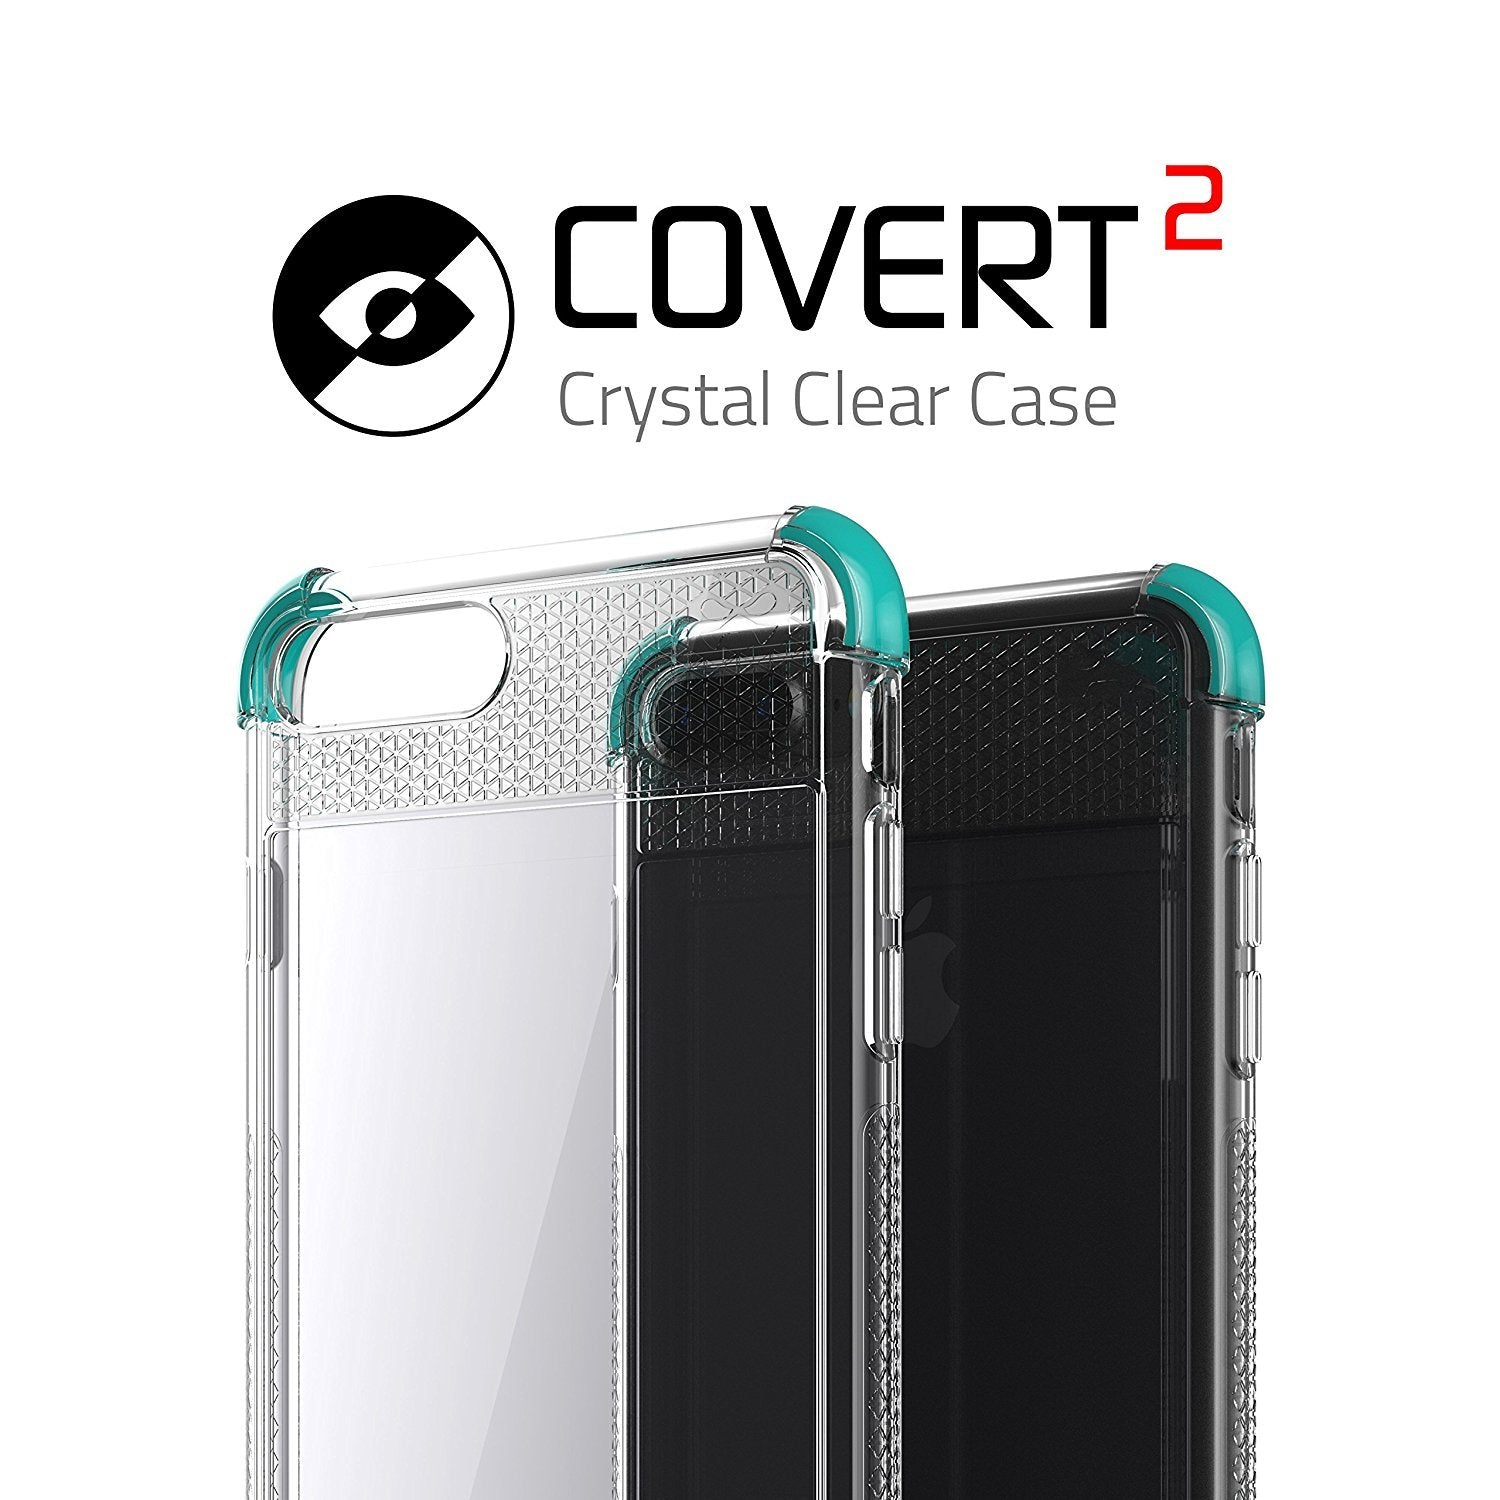 iPhone 7+ Plus Case, Ghostek Covert 2 Series for iPhone 7+ Plus Protective Case [ Teal]